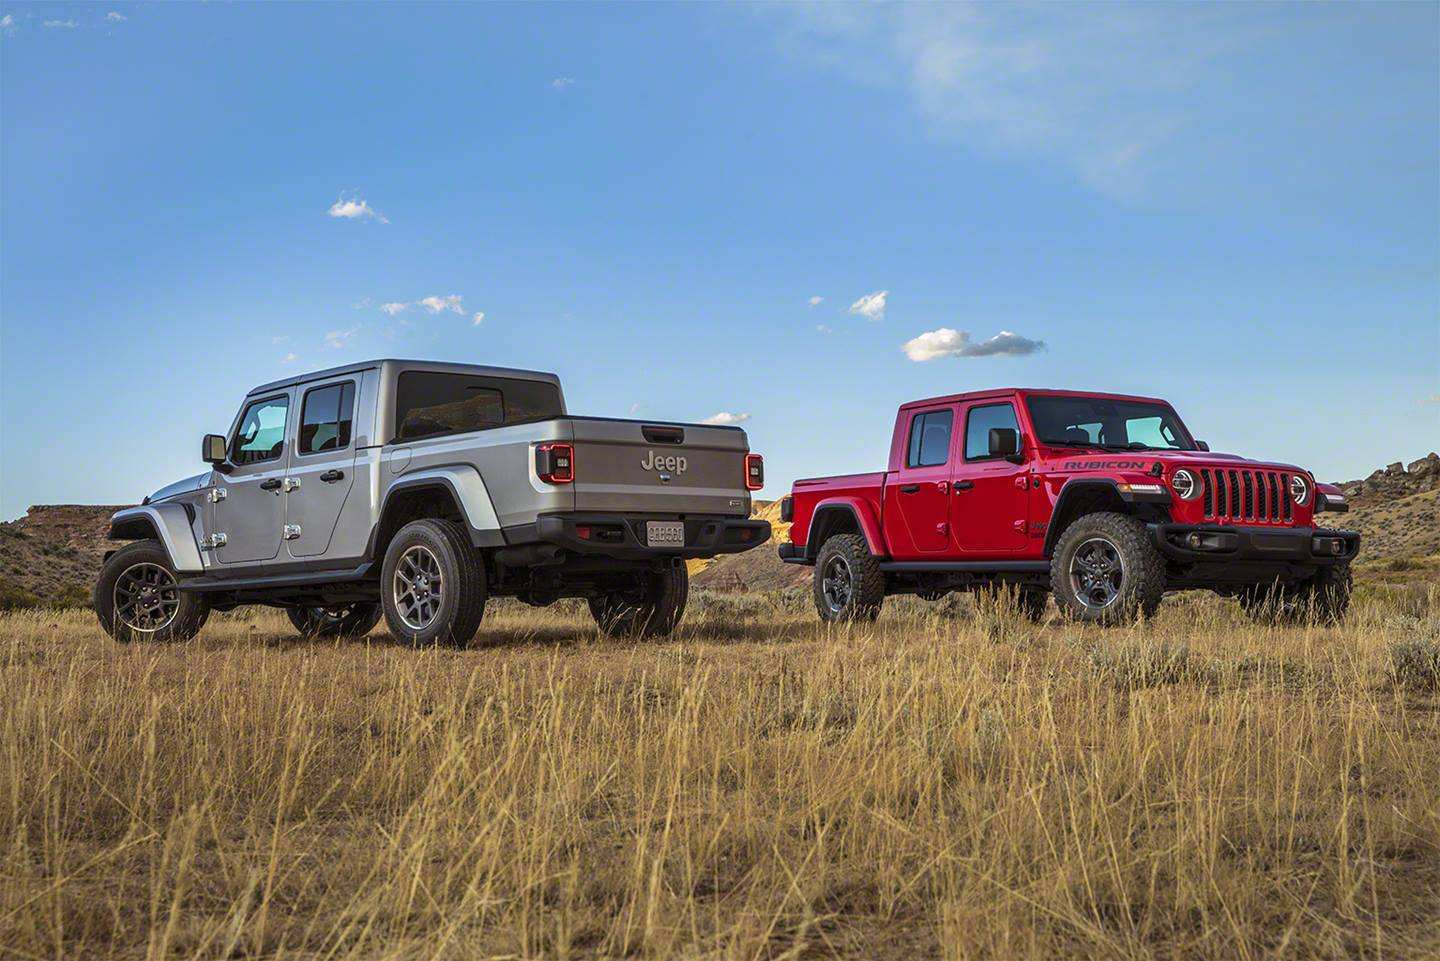 18 Best Review Price Of 2020 Jeep Gladiator Spy Shoot by Price Of 2020 Jeep Gladiator